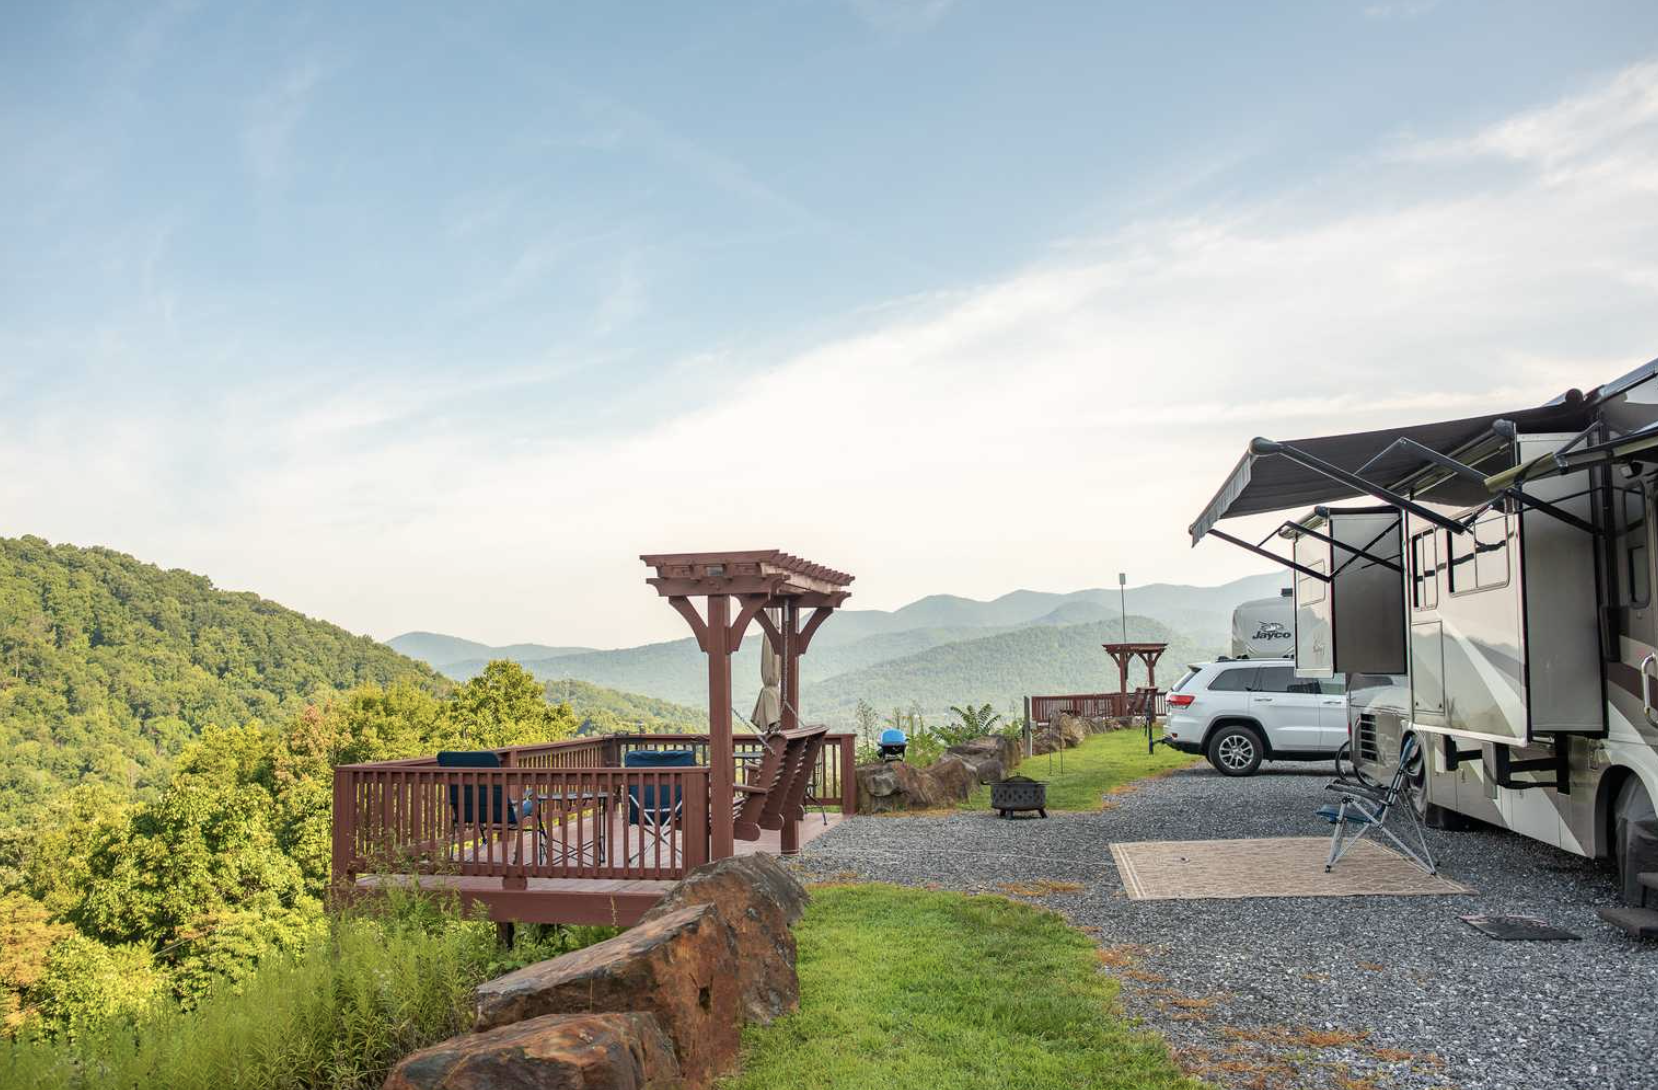 RV parked at campground with mountains in background.